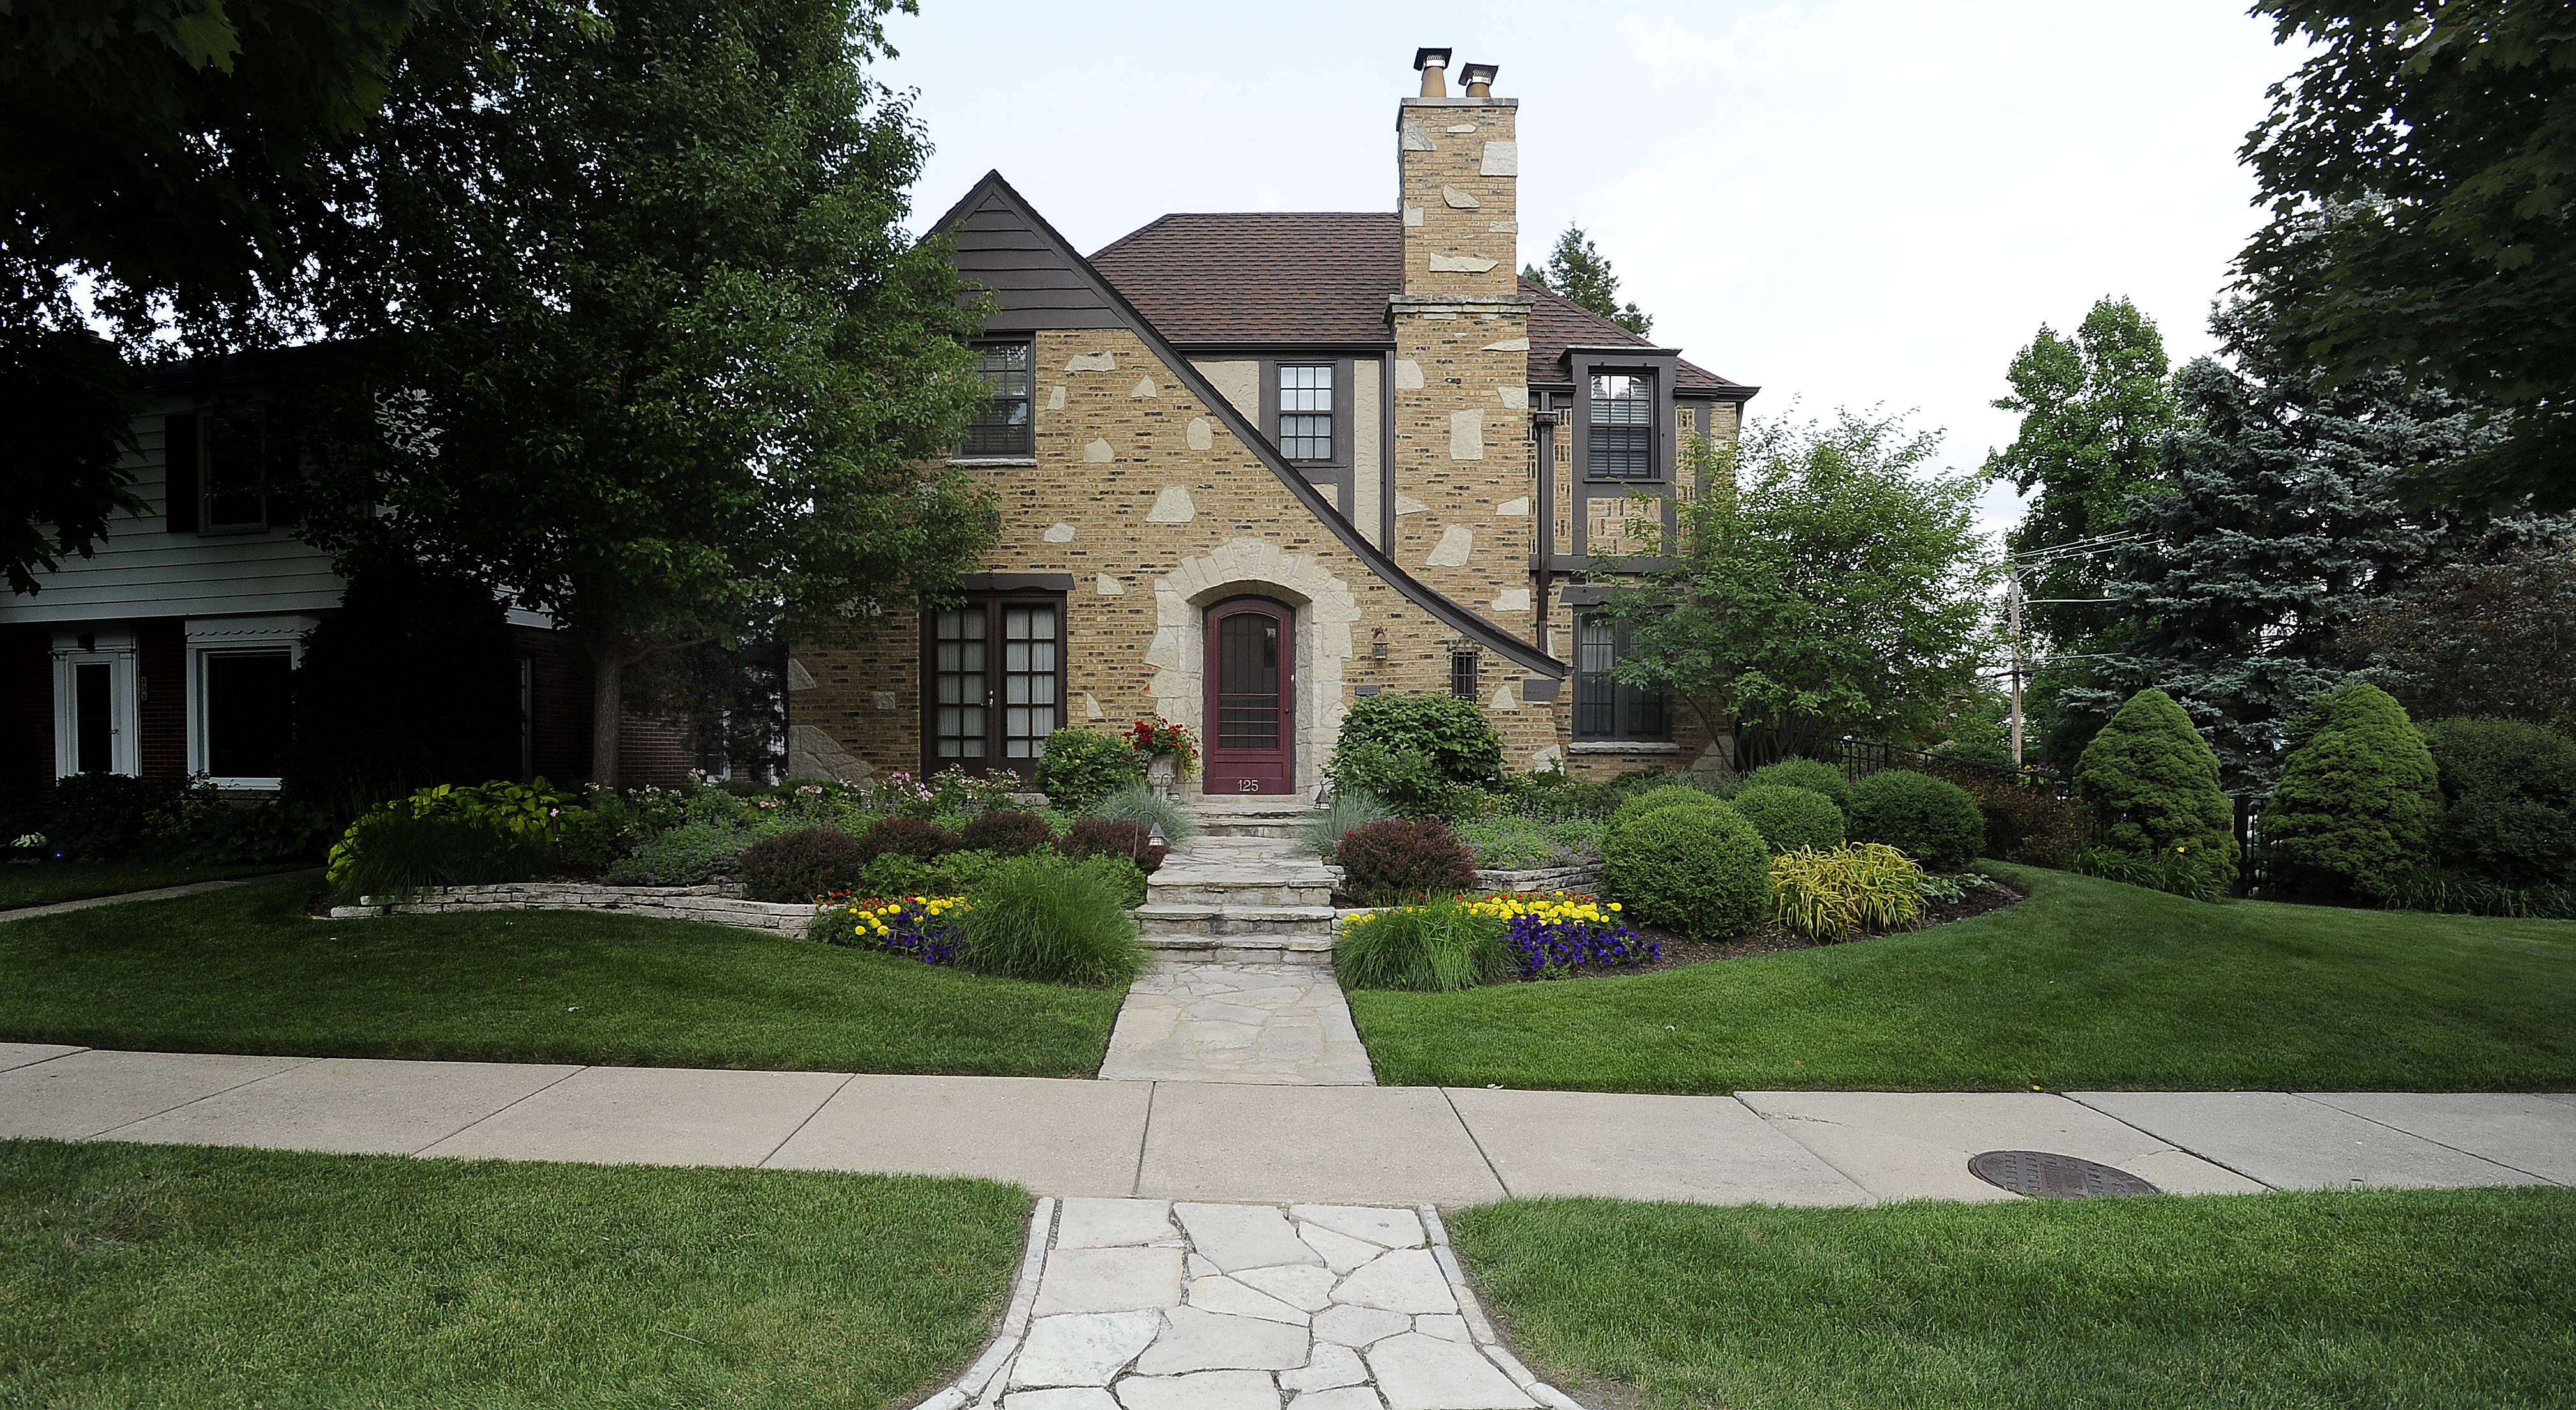 Stan and Barbara Hardwick's home at 125 Stratford Road in Des Plaines was the hands-down winner of the Best Curb Appeal challenge.